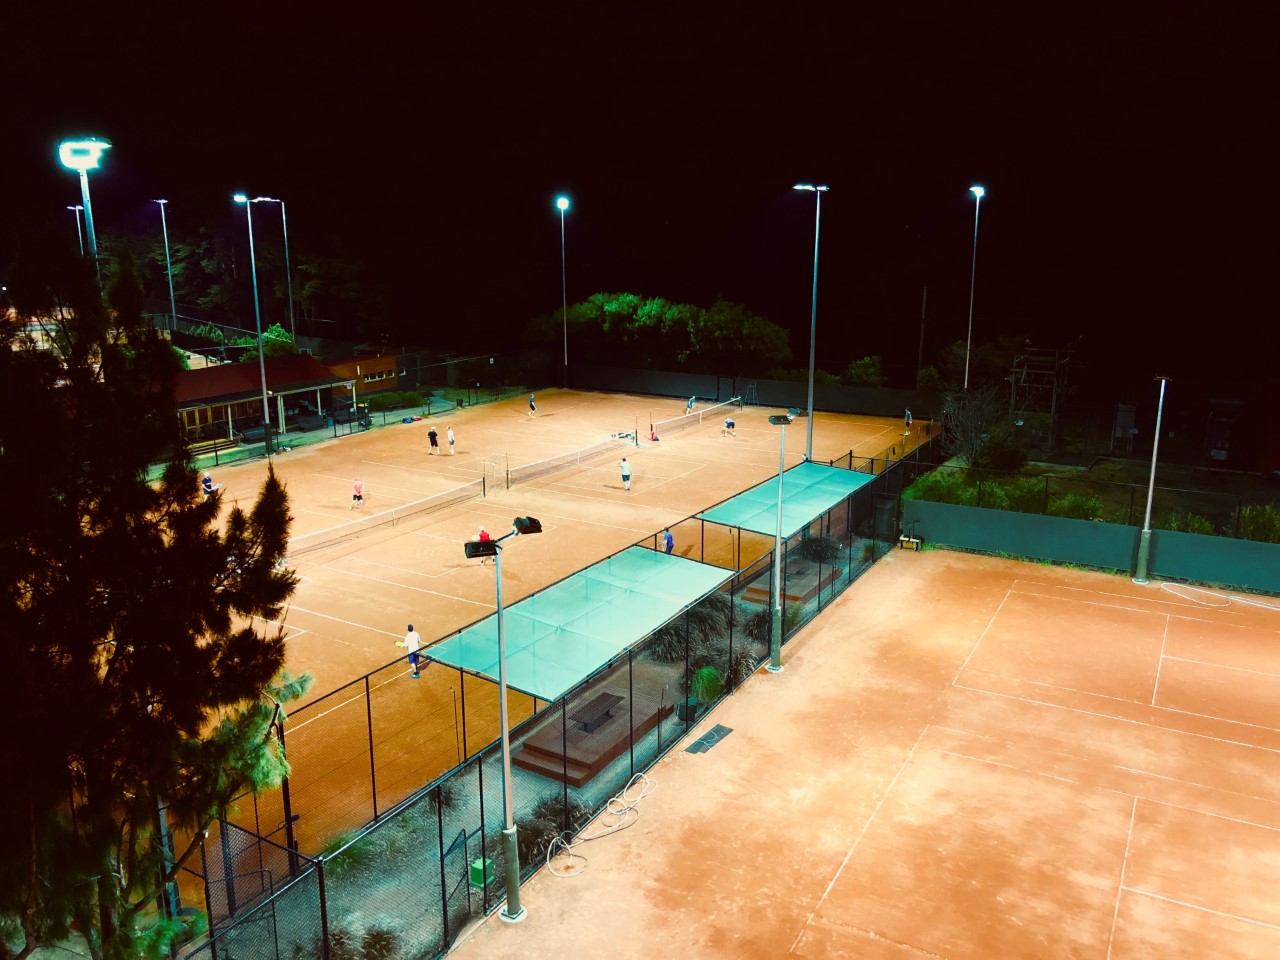 courts under lights2